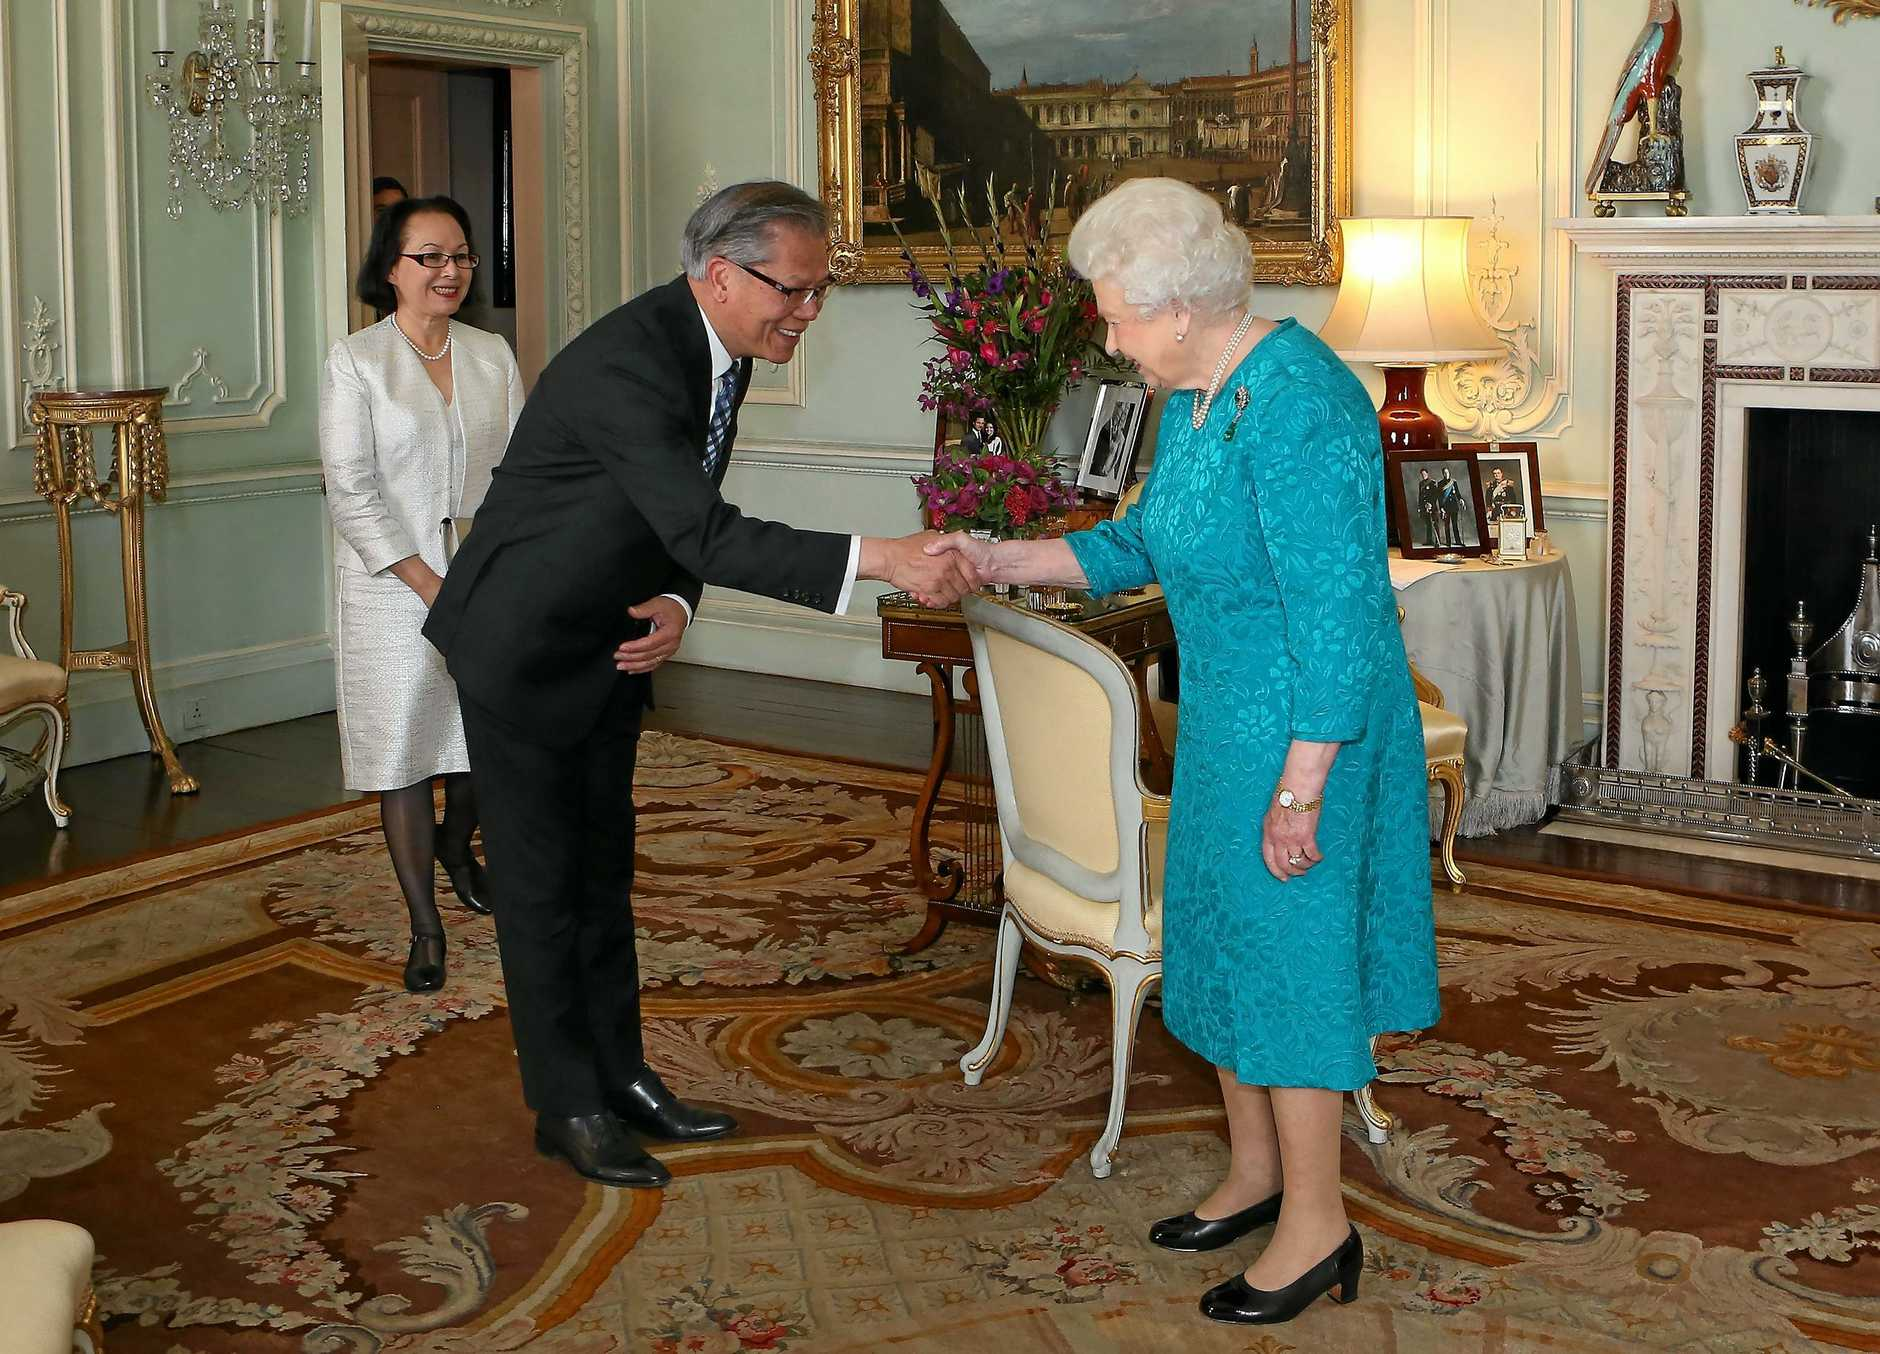 LONDON, ENGLAND - OCTOBER 18:  Queen Elizabeth II receives the Governor of South Australia, the Hon. Hieu Van Le and his wife Mrs Le at Buckingham Palace on October 18, 2016 in London, England.  (Photo by Philip Toscano - WPA Pool/Getty Images)